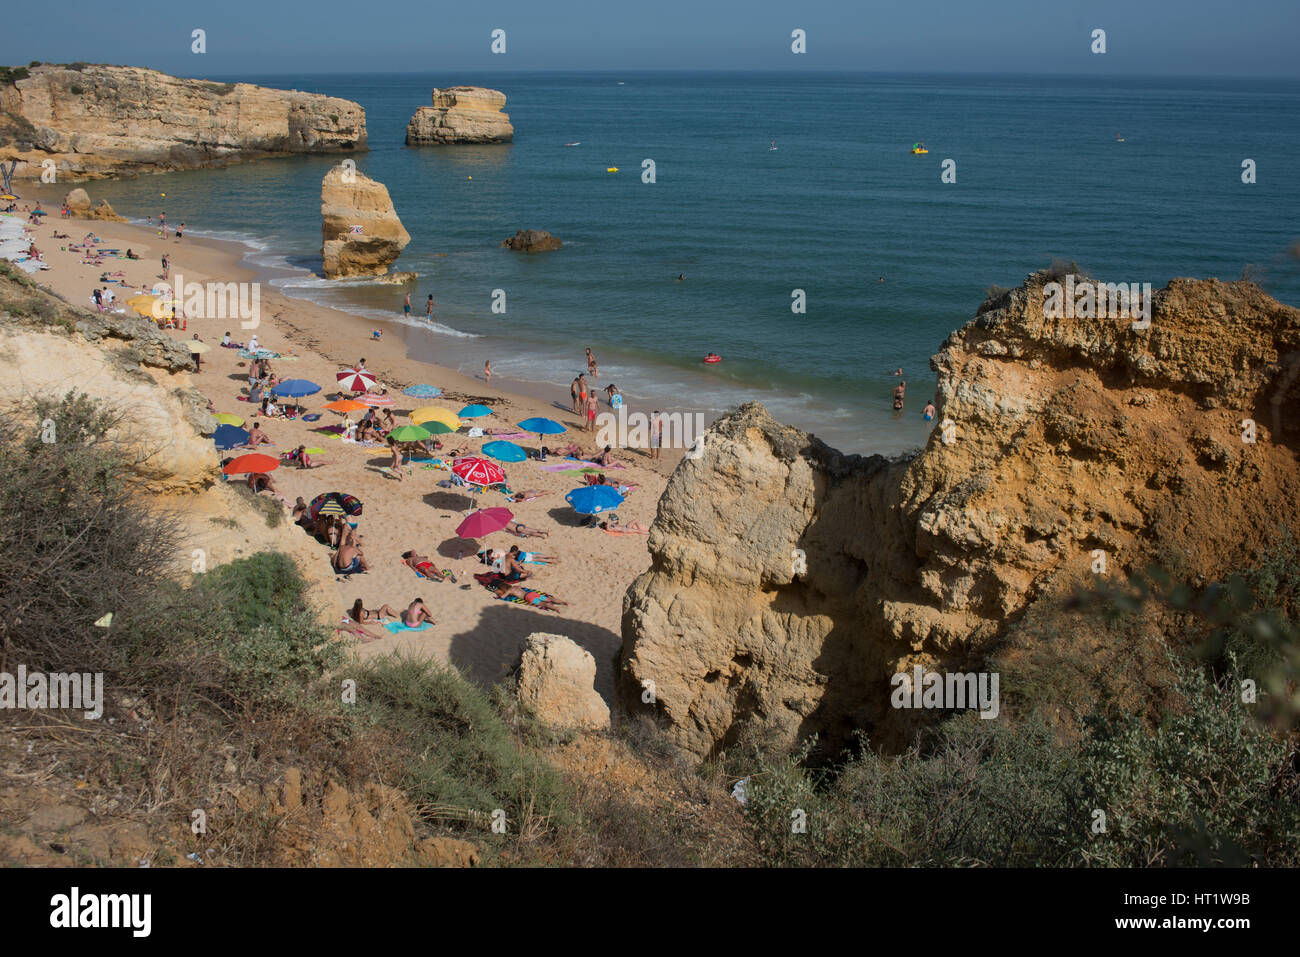 Beach with cliffs and sand on the Algarve coast, Portugal - Stock Image